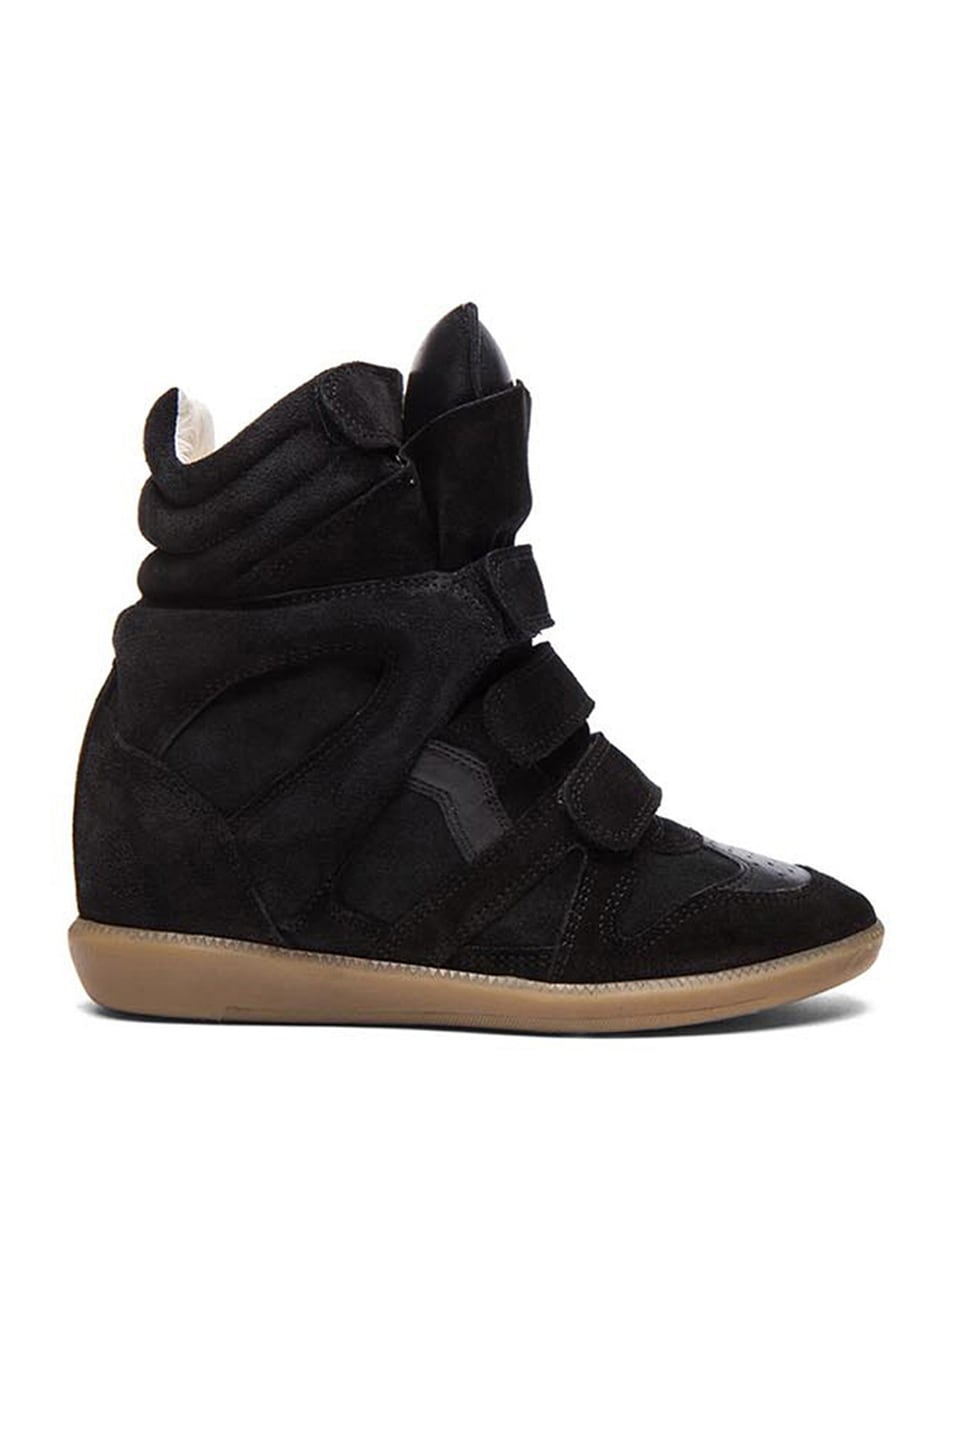 Image 1 of Isabel Marant Bekett Calfskin Velvet Leather Sneakers in Faded Black